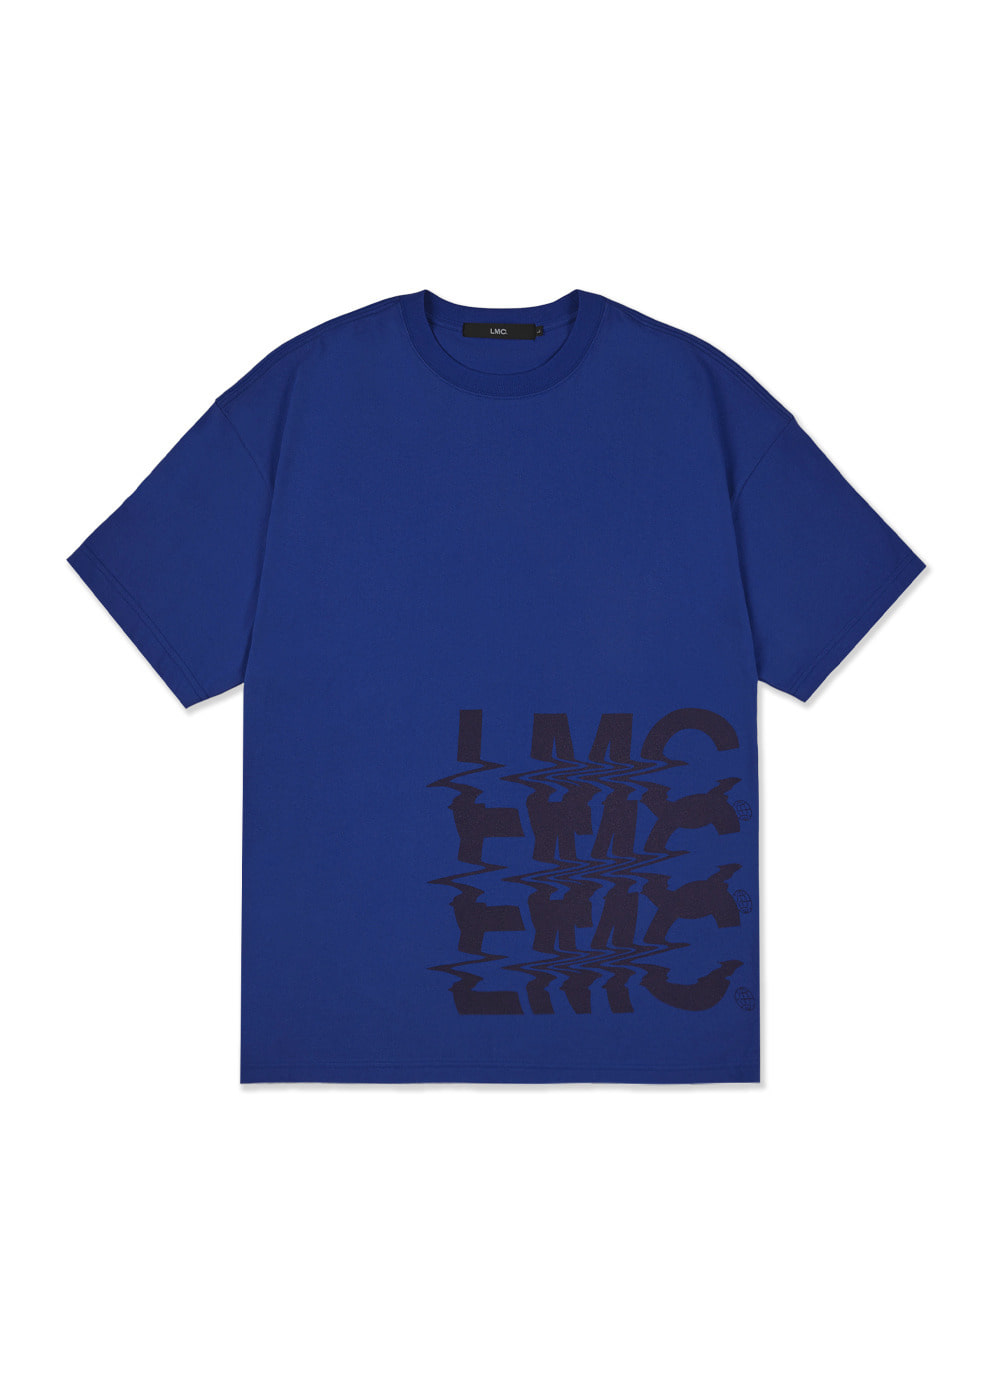 LMC NOISE OVERSIZED TEE royal blue